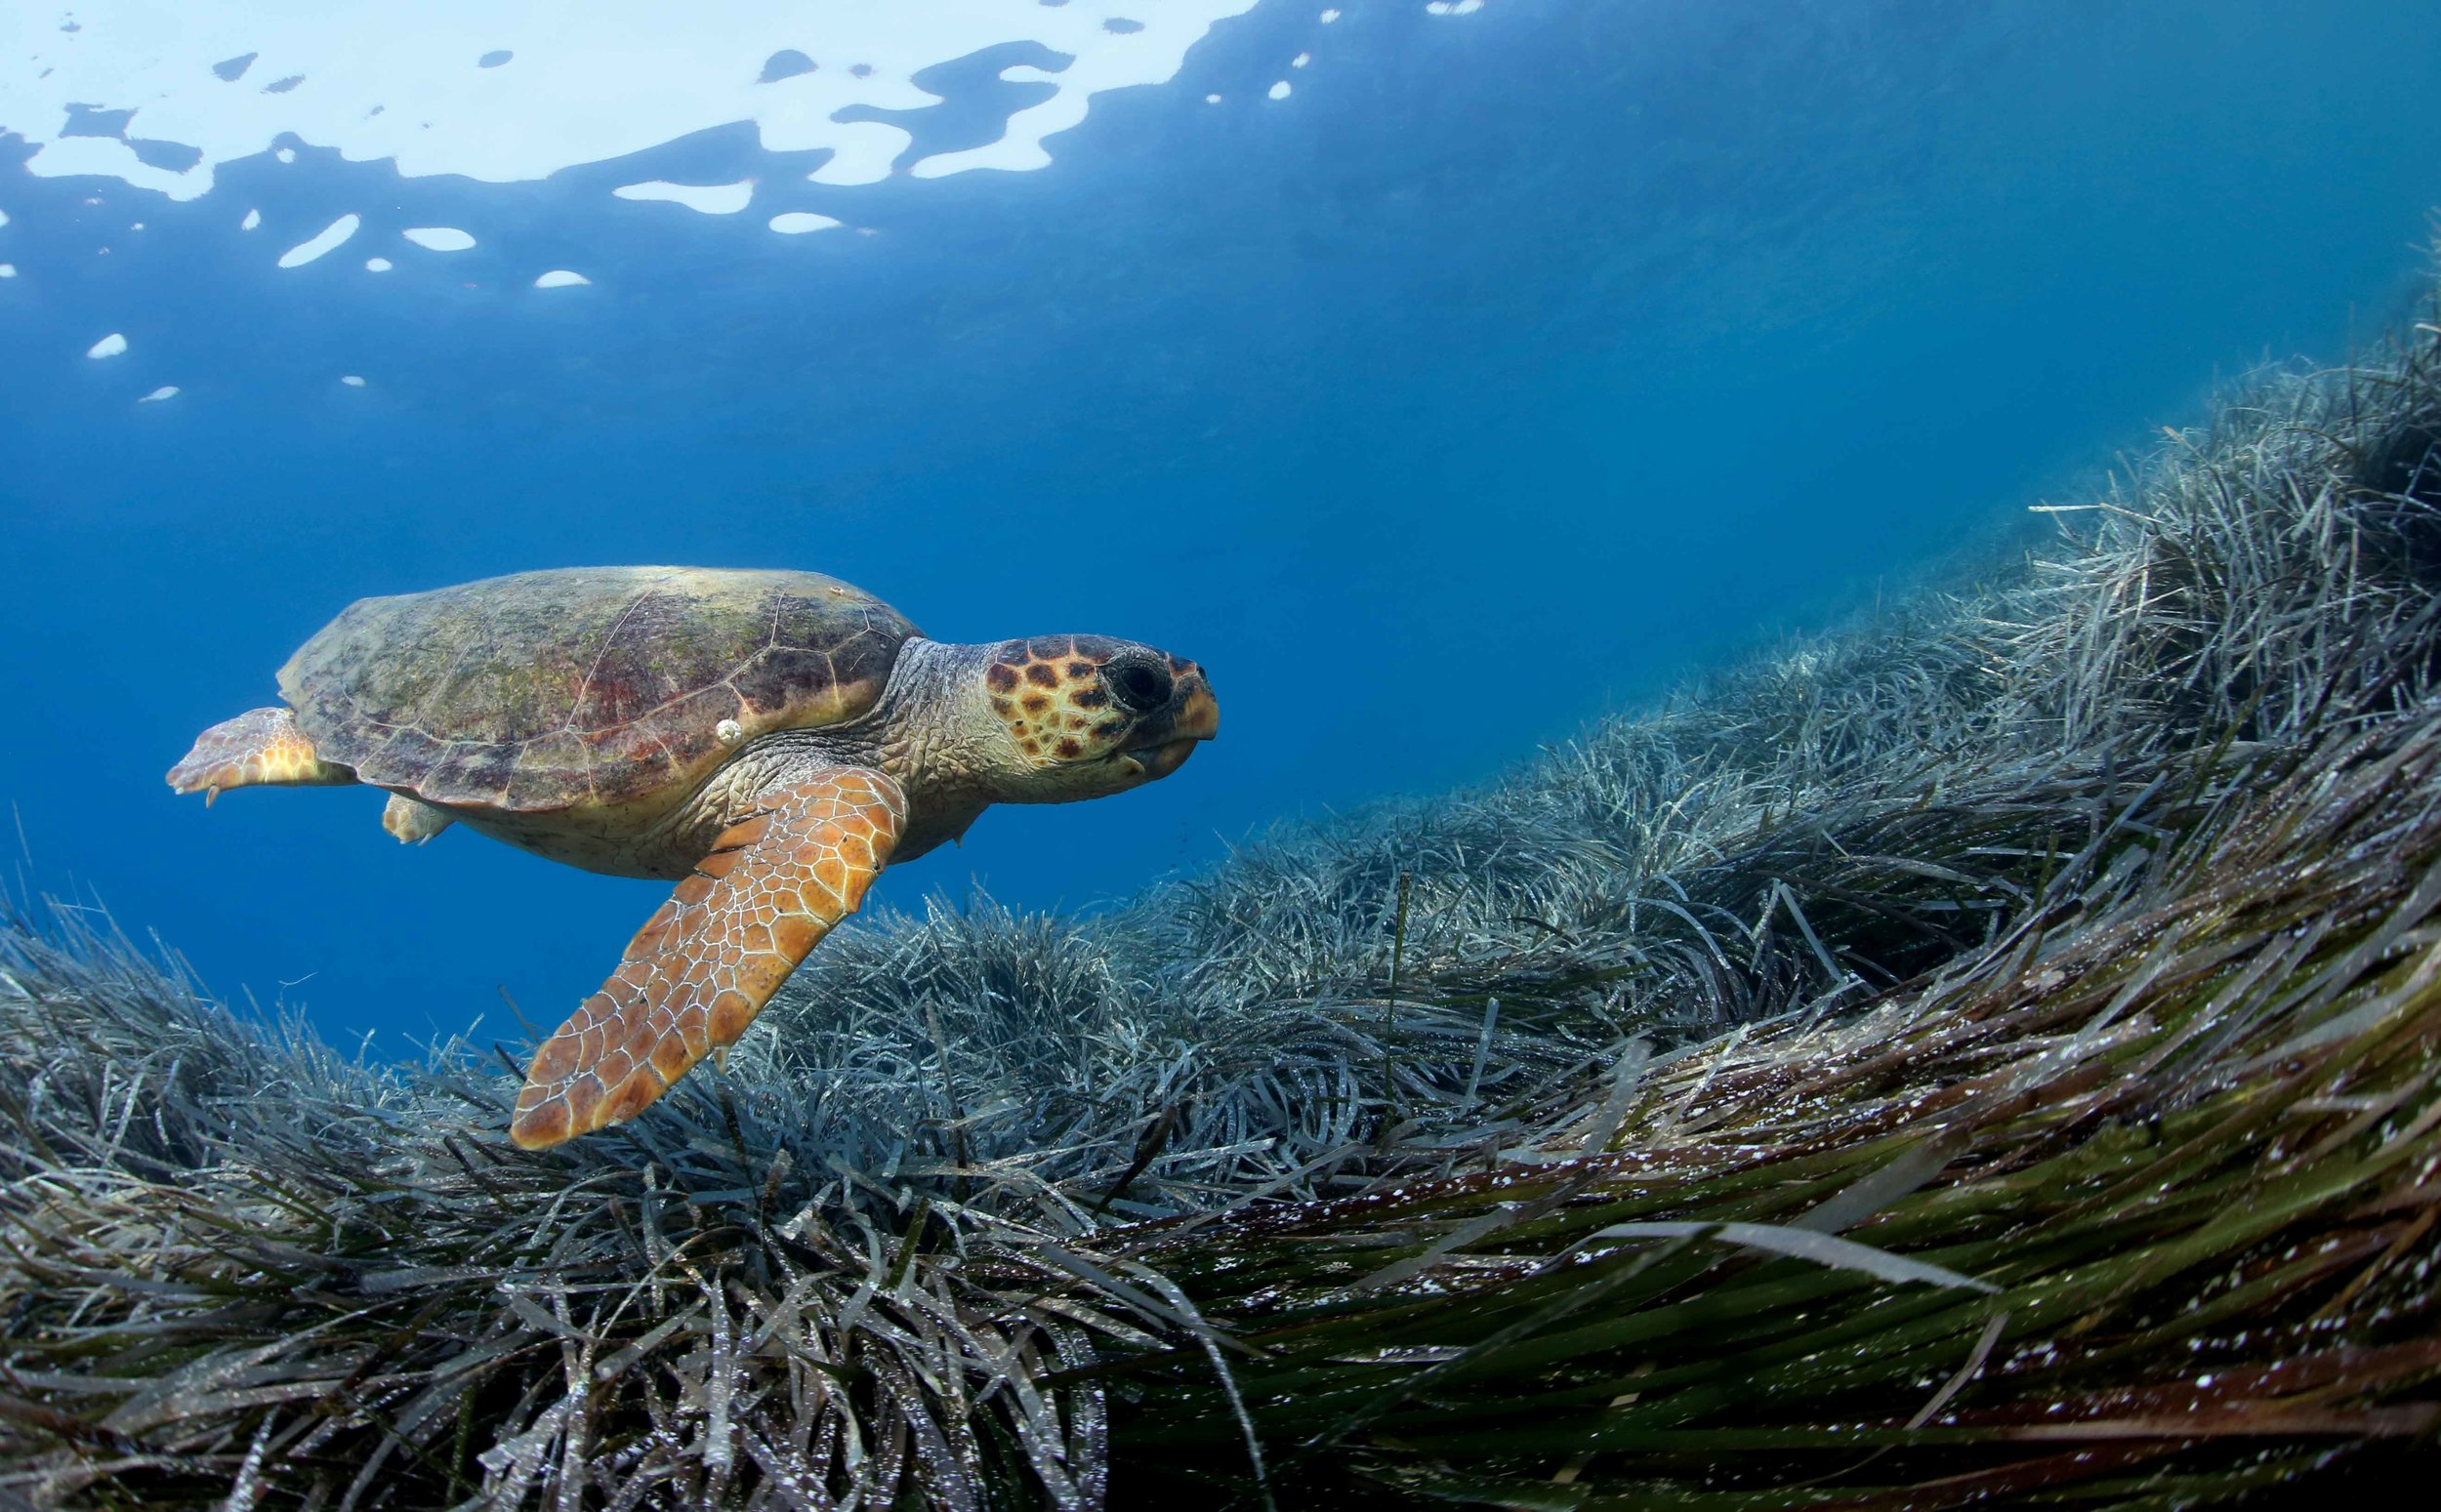 A loggerhead turtle swims above endemic seagrass ( Posidonia oceanica ) in the Mediterranean Sea. © KOSTAS PAPAFITSOROS